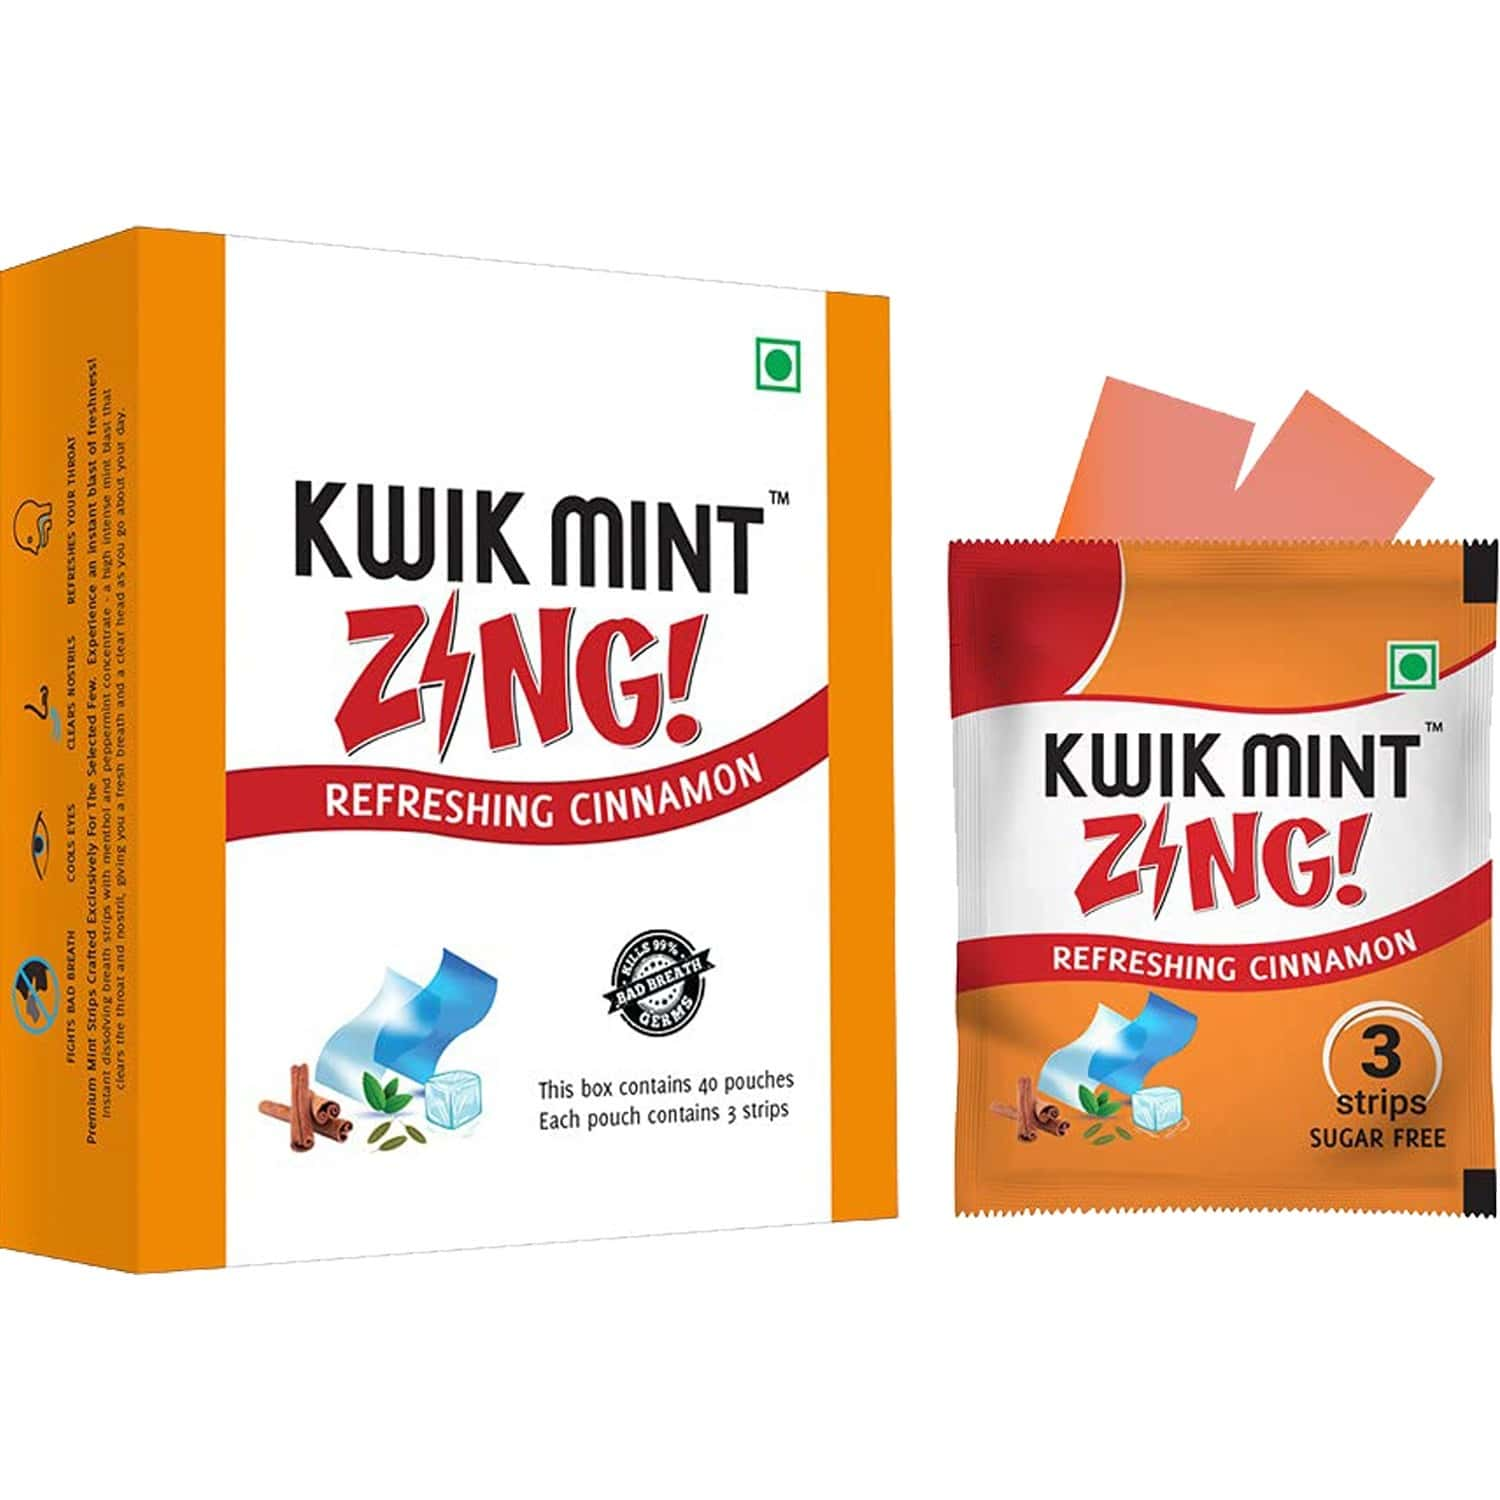 Kwik Mint Instant Action Mouth Freshener Cinnamon Strips - Pack Of 1 (1 X 20 G)